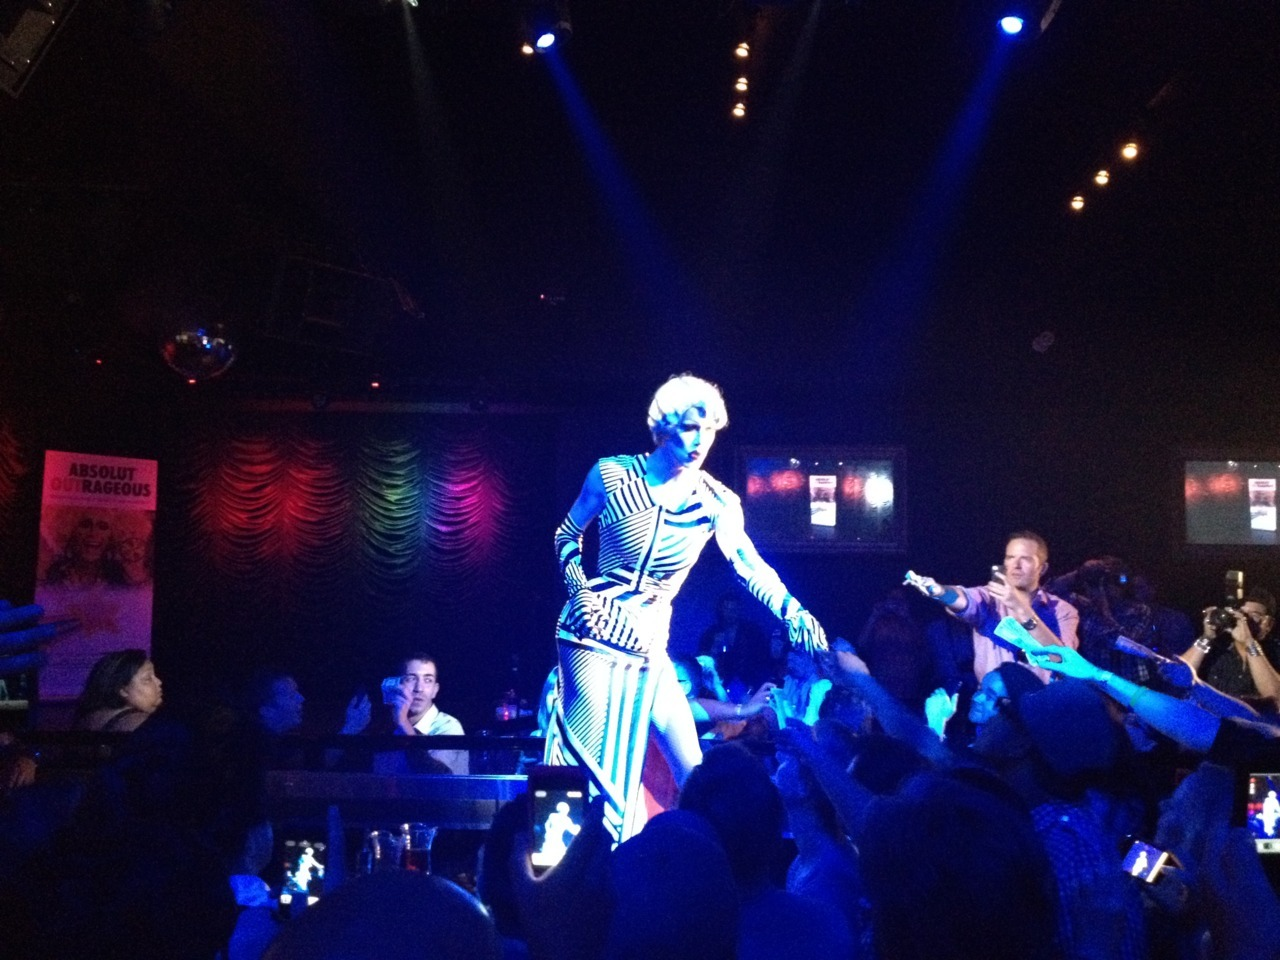 Sharon Needles @ Fbar Houston 5/27/12